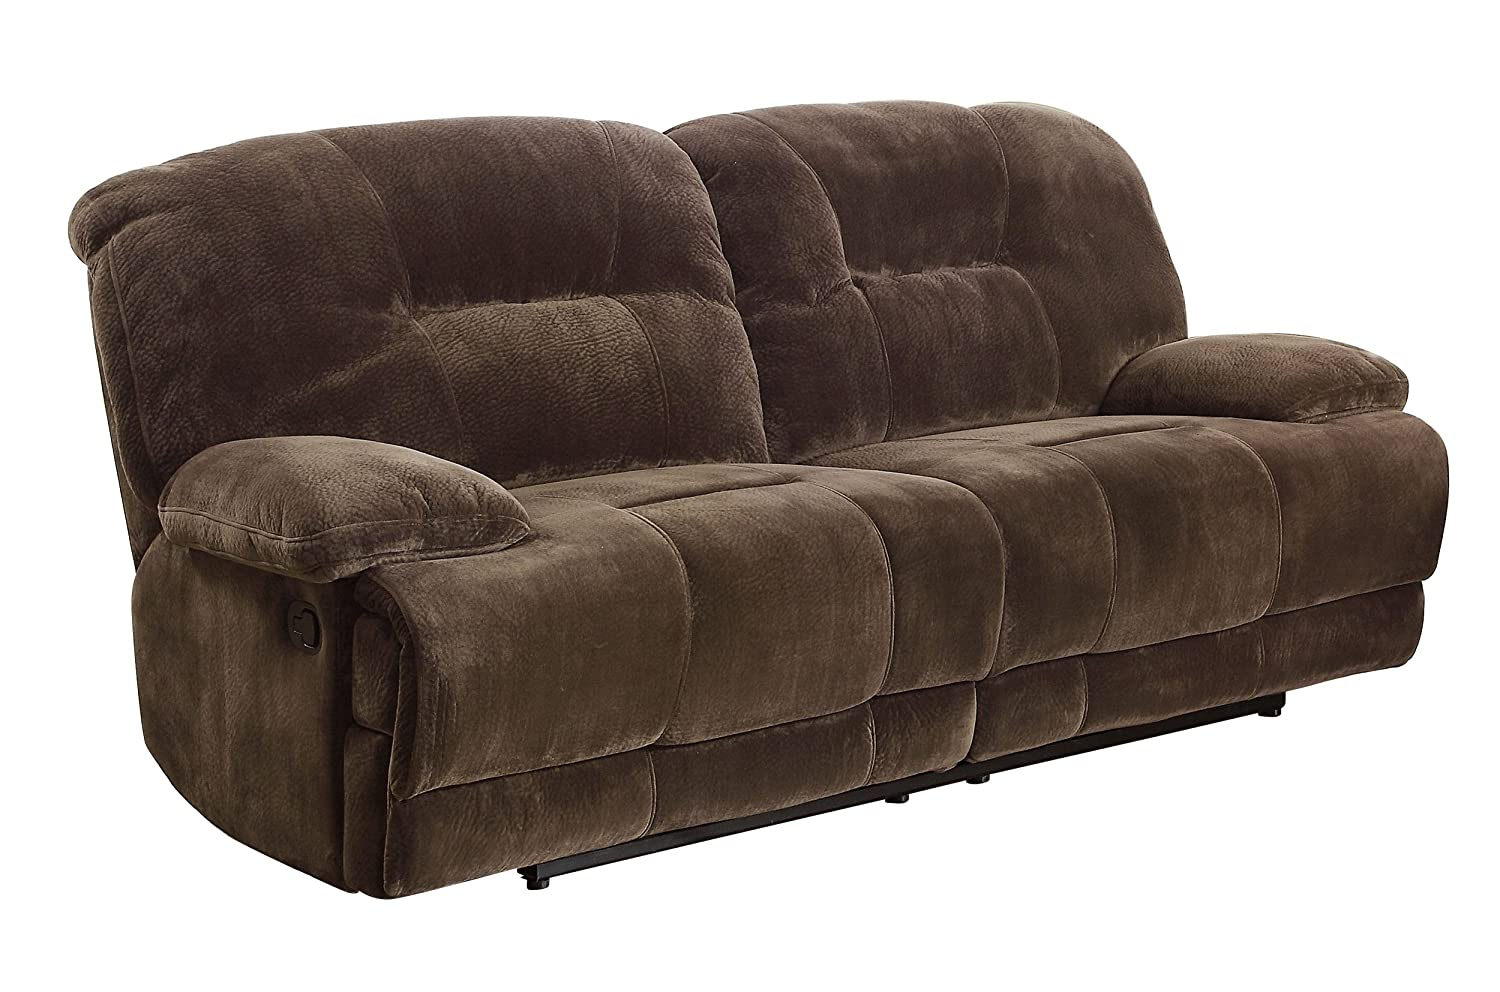 Pleasing Homelegance Double Reclining 2 Seater Sofa Dark Brown Textured With Plush Microfiber Onthecornerstone Fun Painted Chair Ideas Images Onthecornerstoneorg